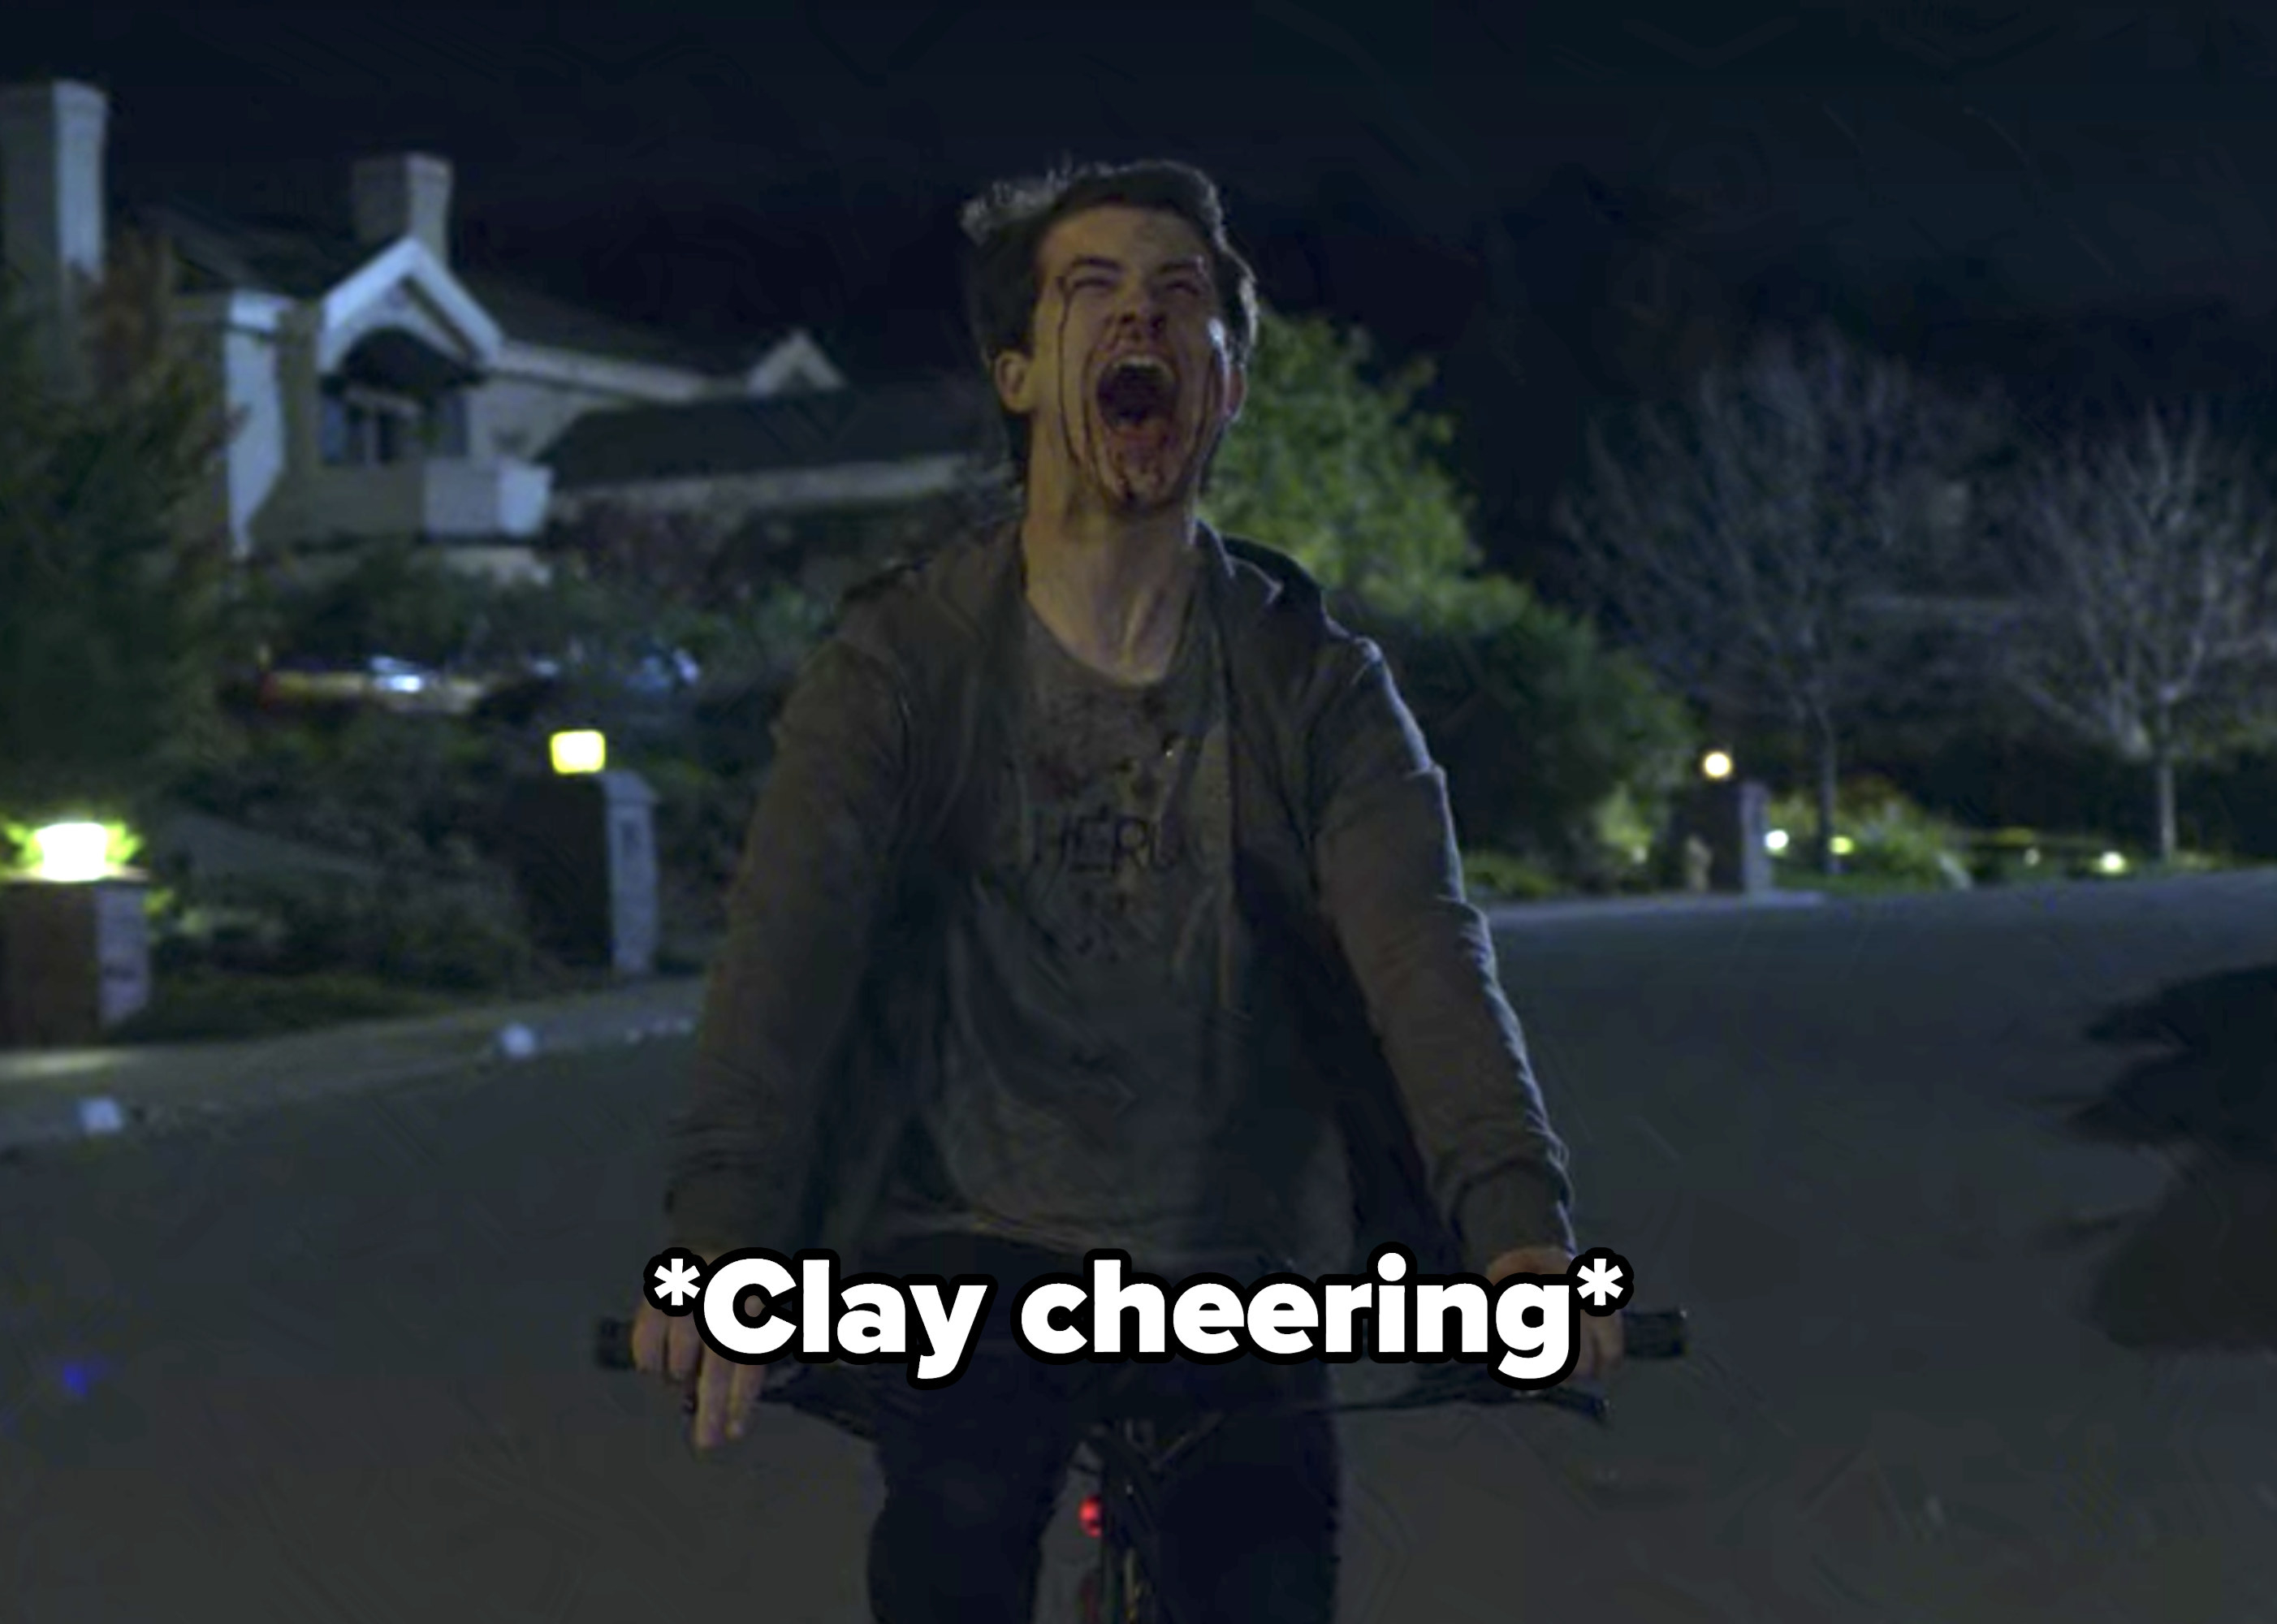 Clay cheering as he rides his bike